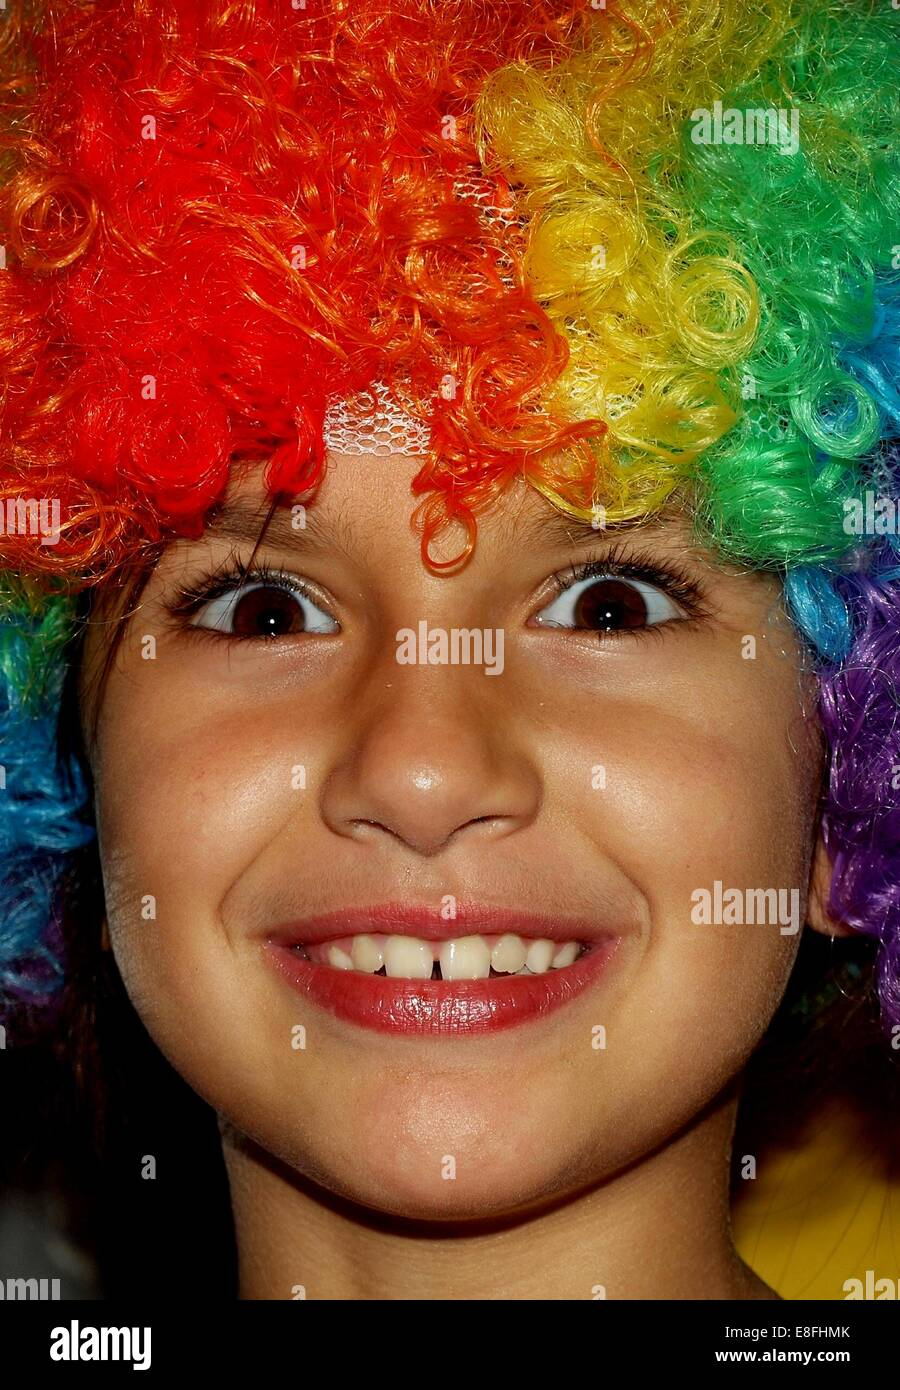 Girl wearing a multi-colored wig - Stock Image